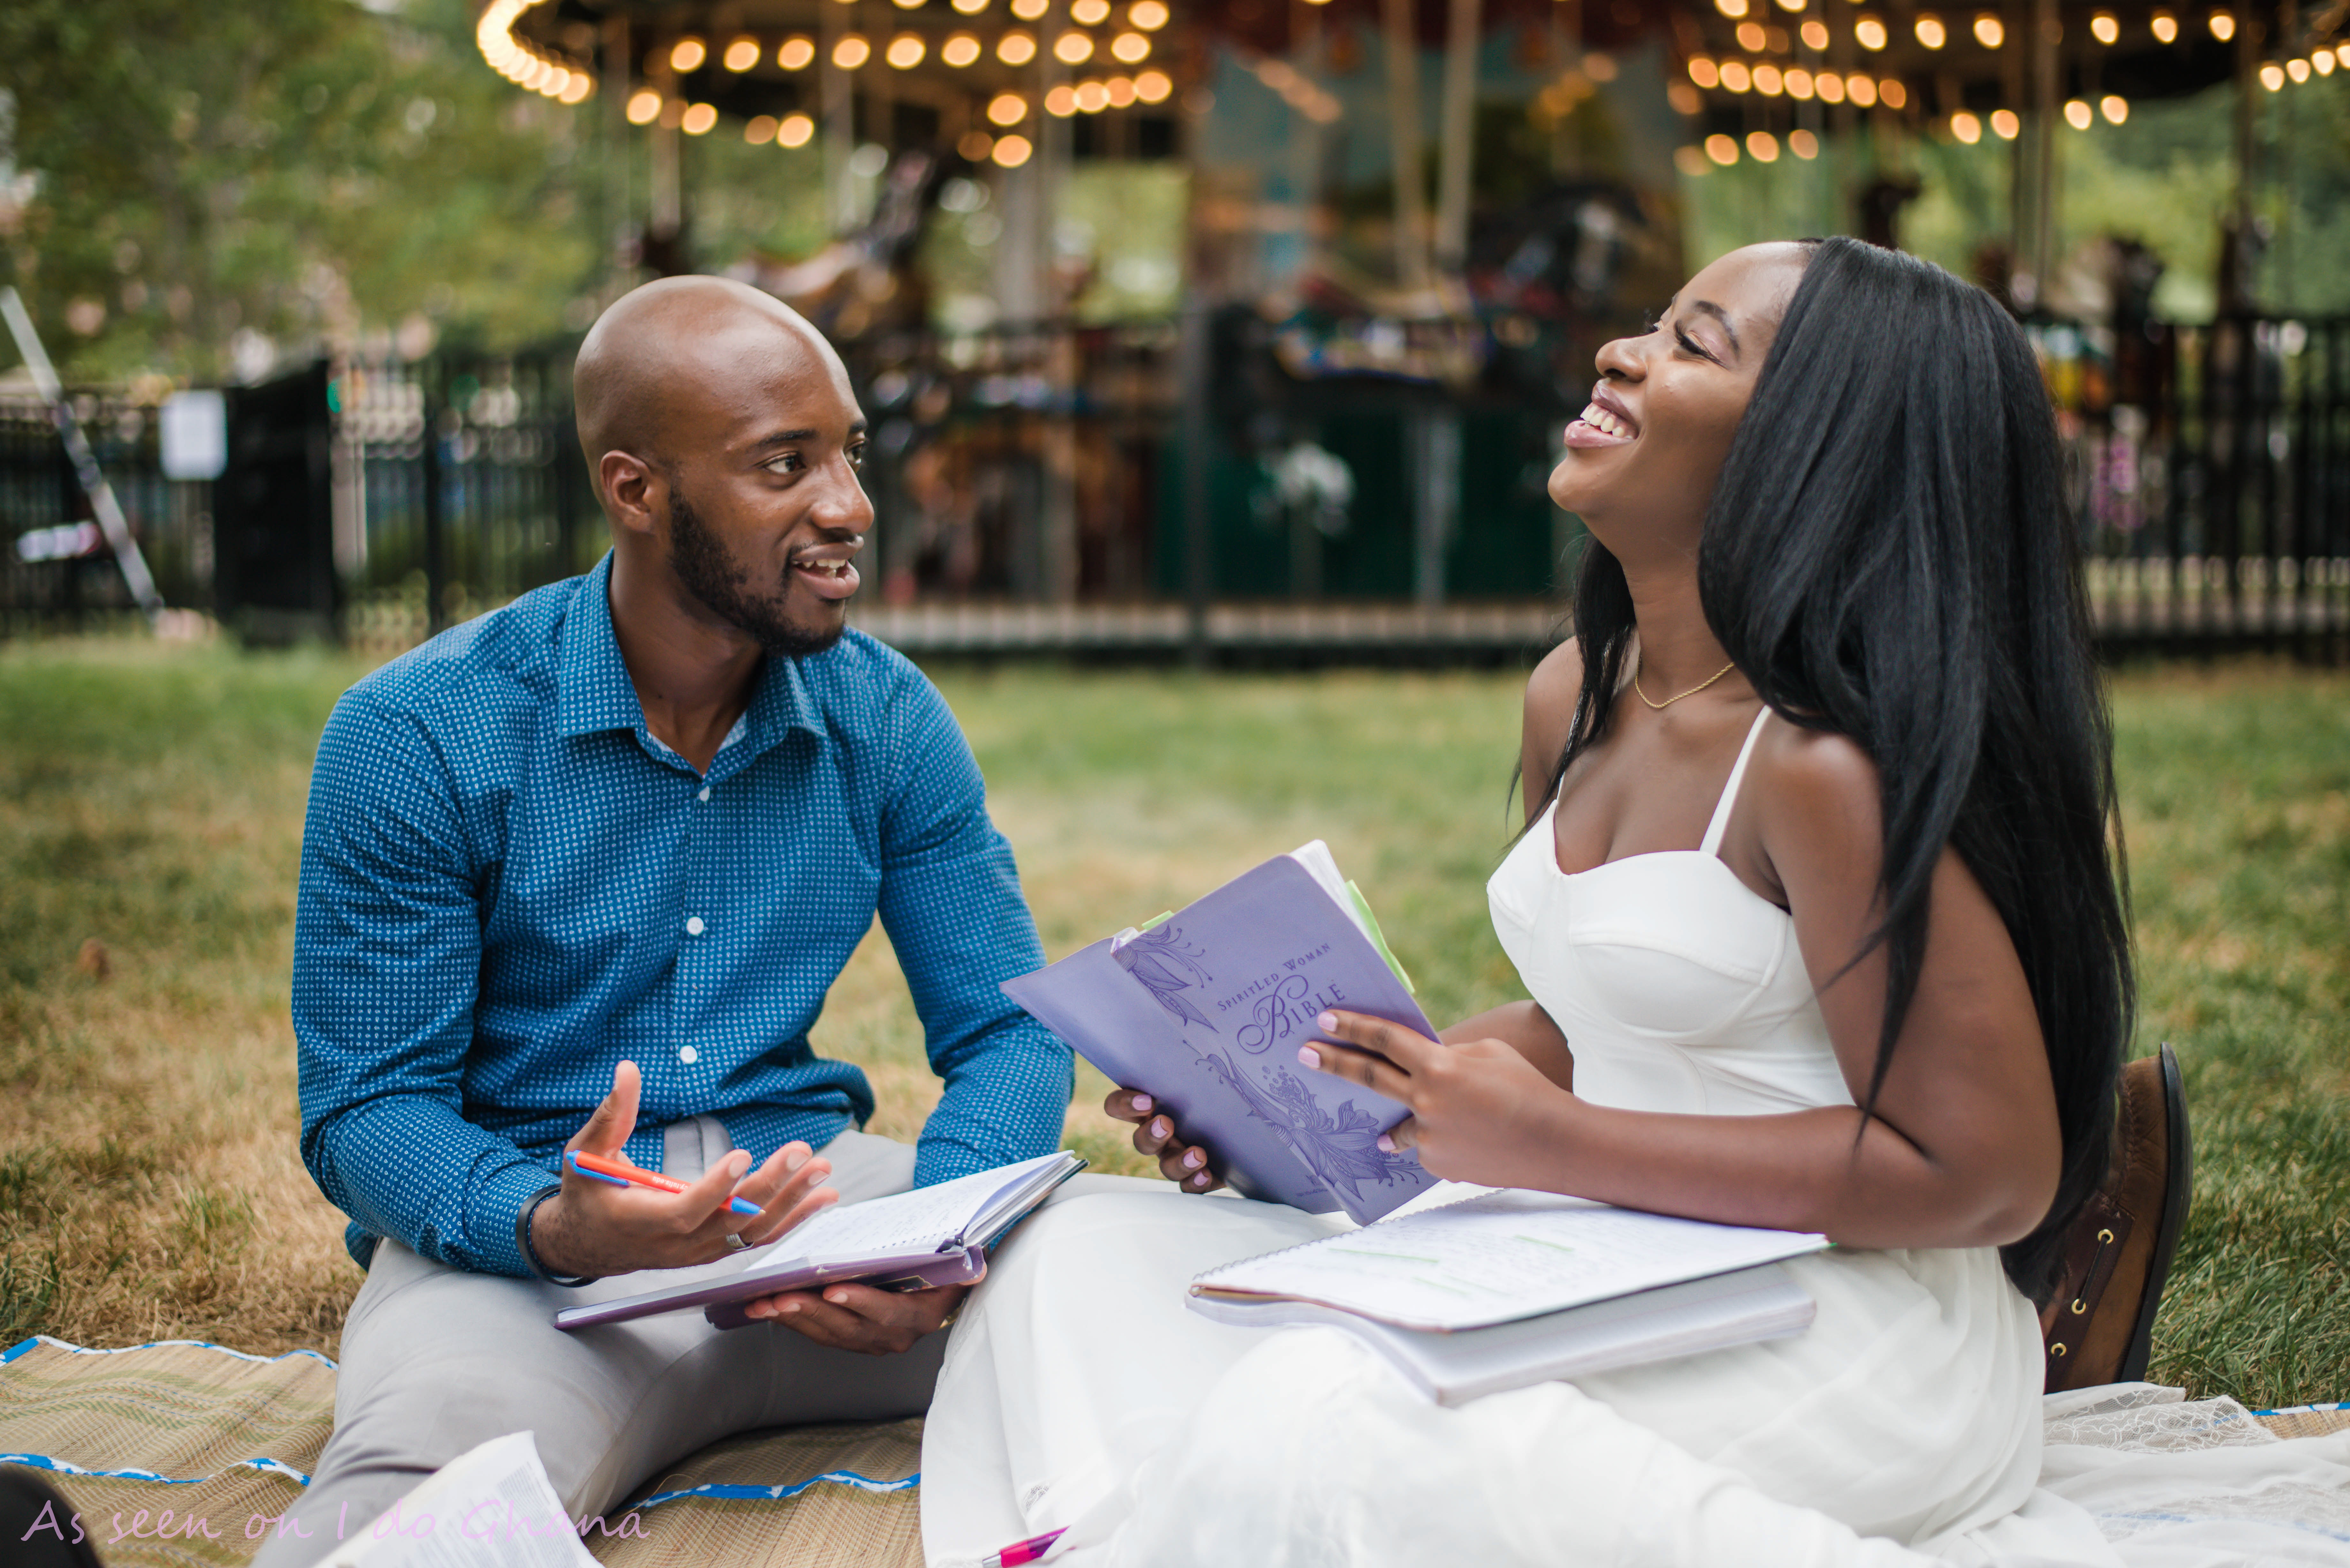 christian dating site in ghana Welcome to the simplest online dating site to date, flirt, or just chat with christian singles it's free to register, view photos, and send messages to single christian men and.